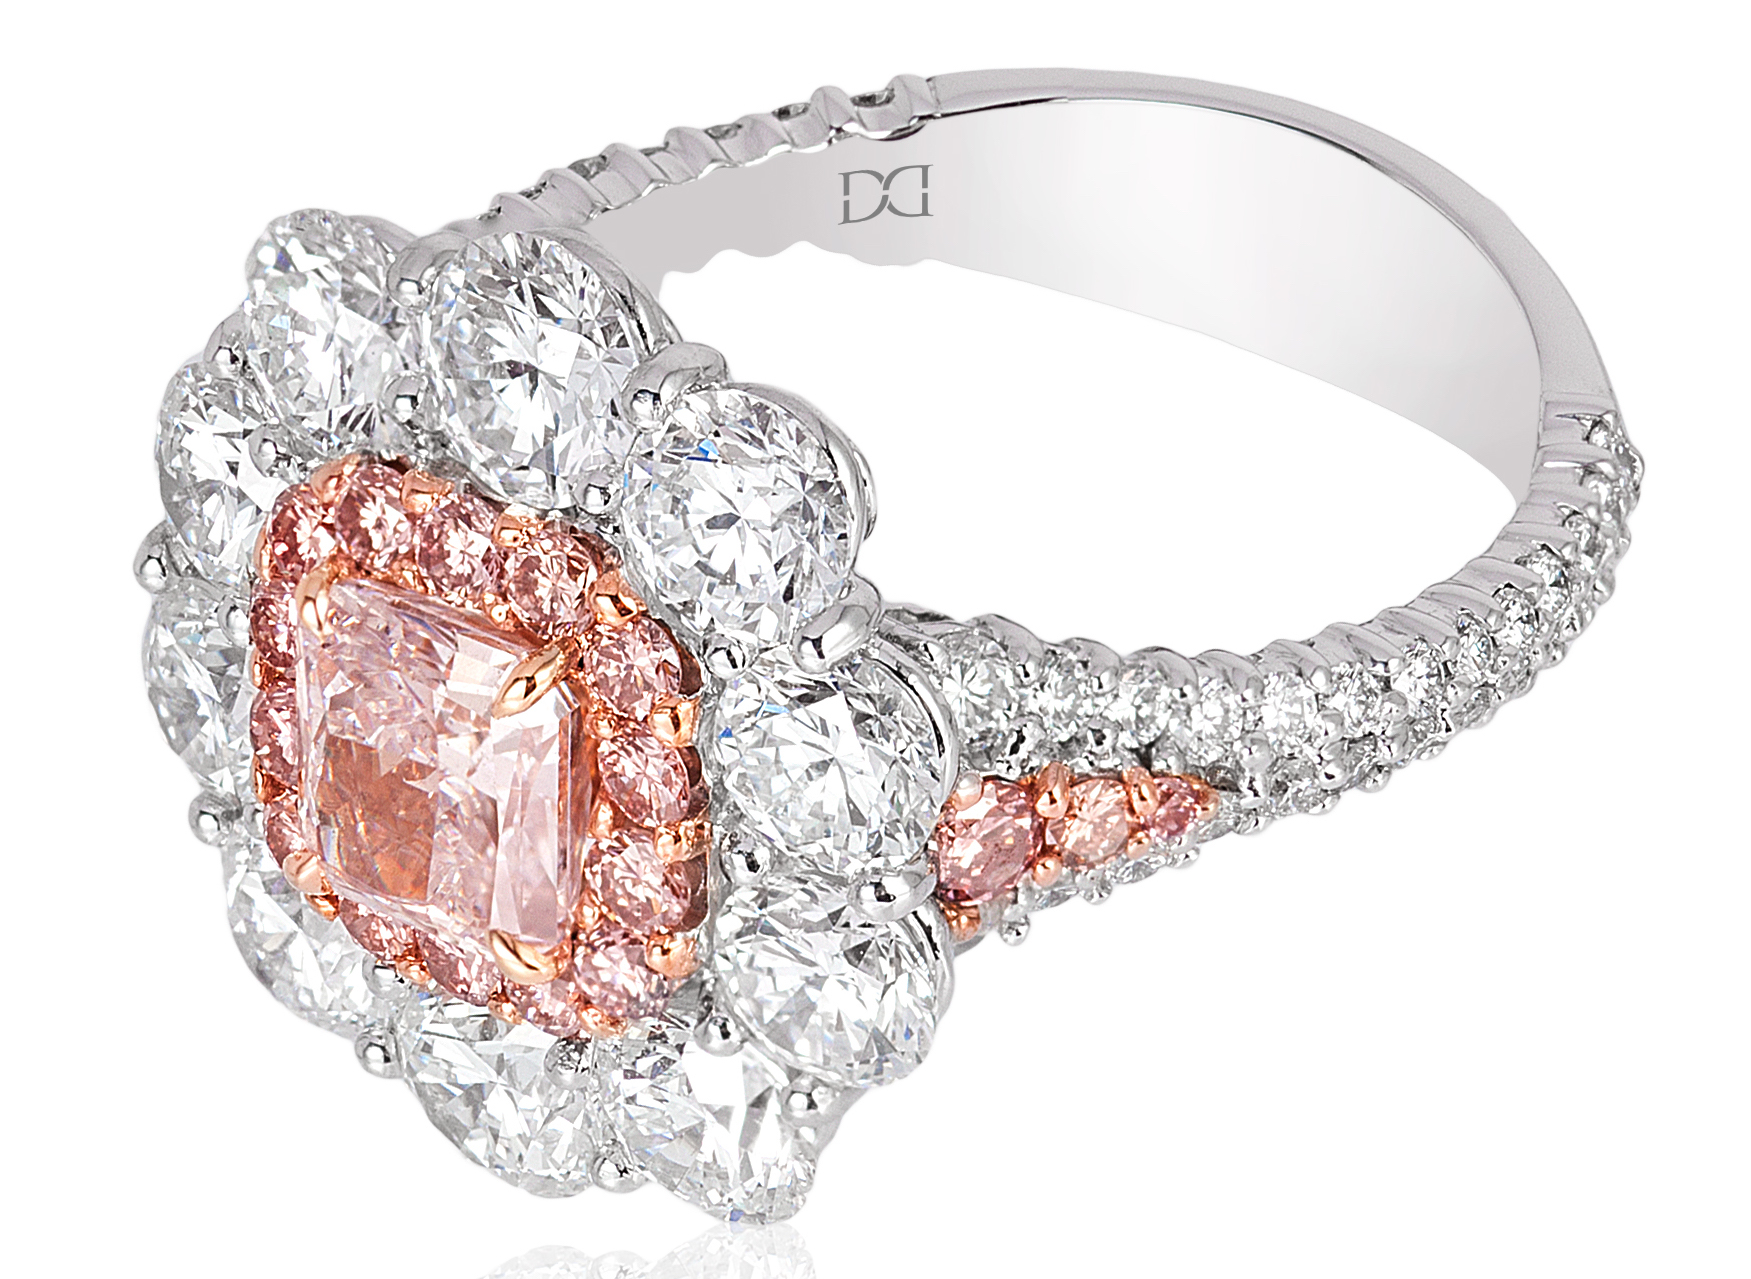 David Mor platinum pink and white diamond ring | JCK On Your Market